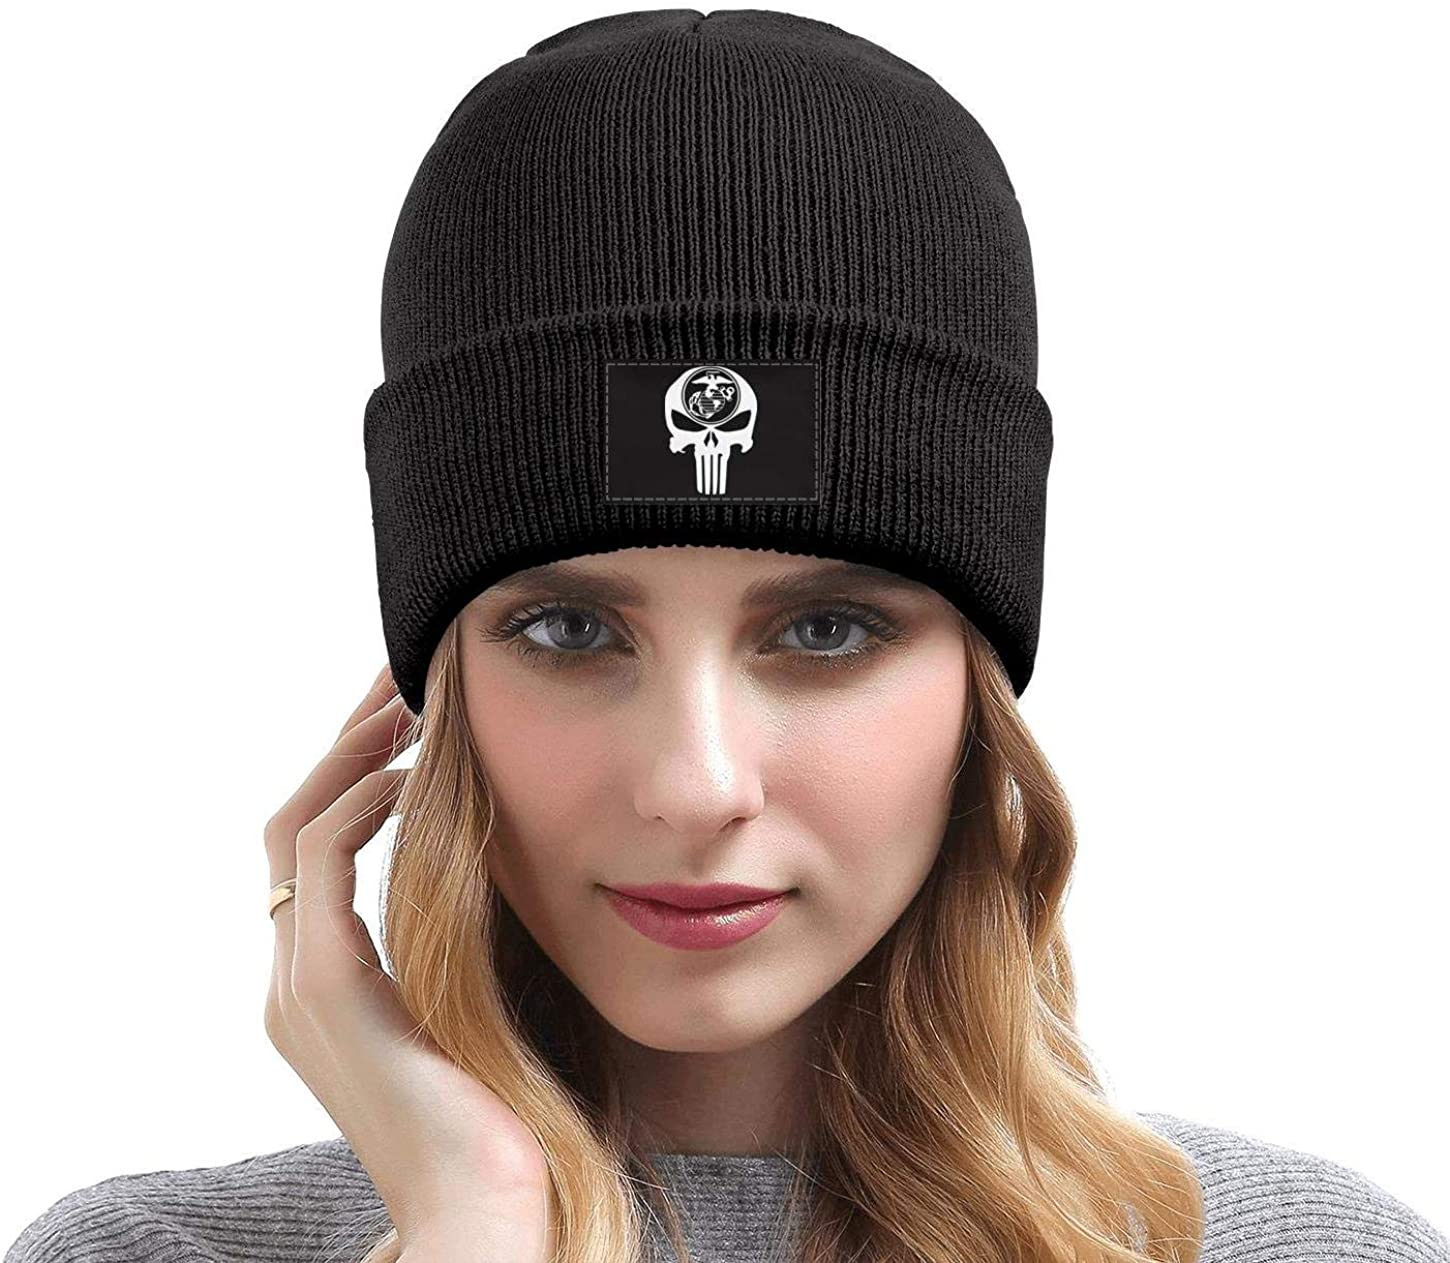 Unisex 3D Knitted Hat Skull Hat Beanie Cap United States Marine Corps